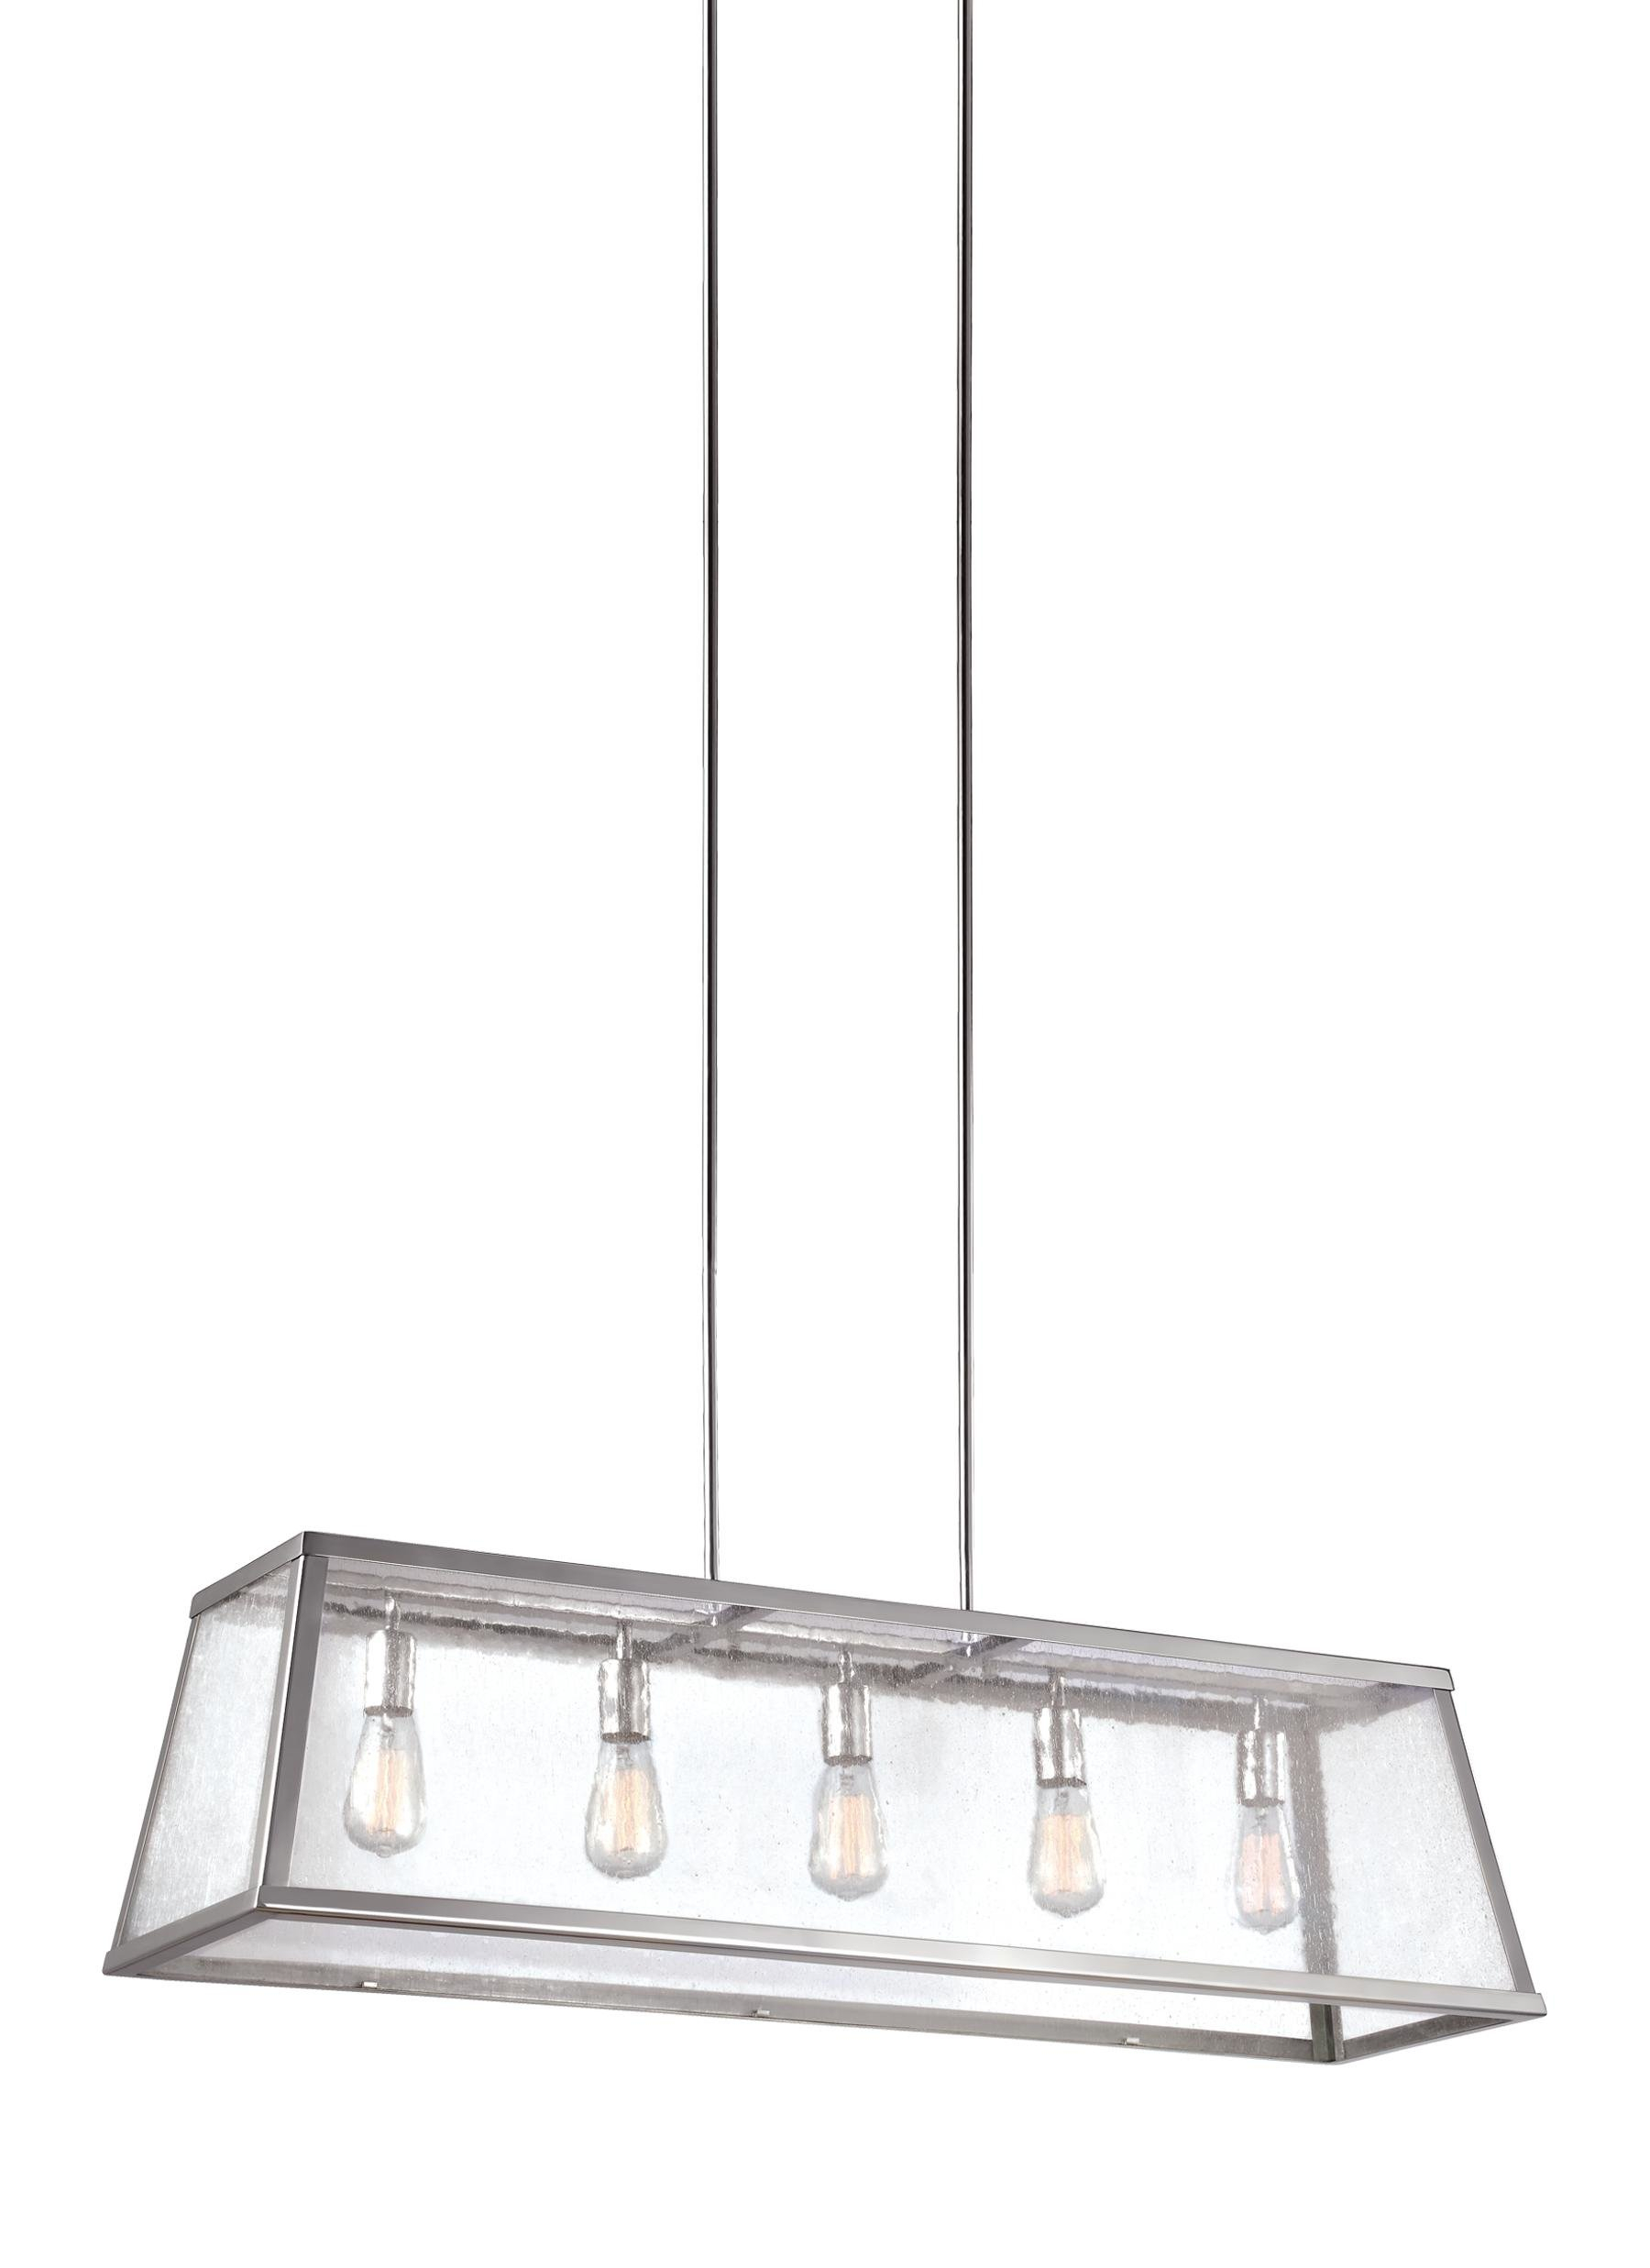 Marlowe 5 Light Kitchen Island Linear Pendant Intended For Hinerman 5 Light Kitchen Island Pendants (View 11 of 30)